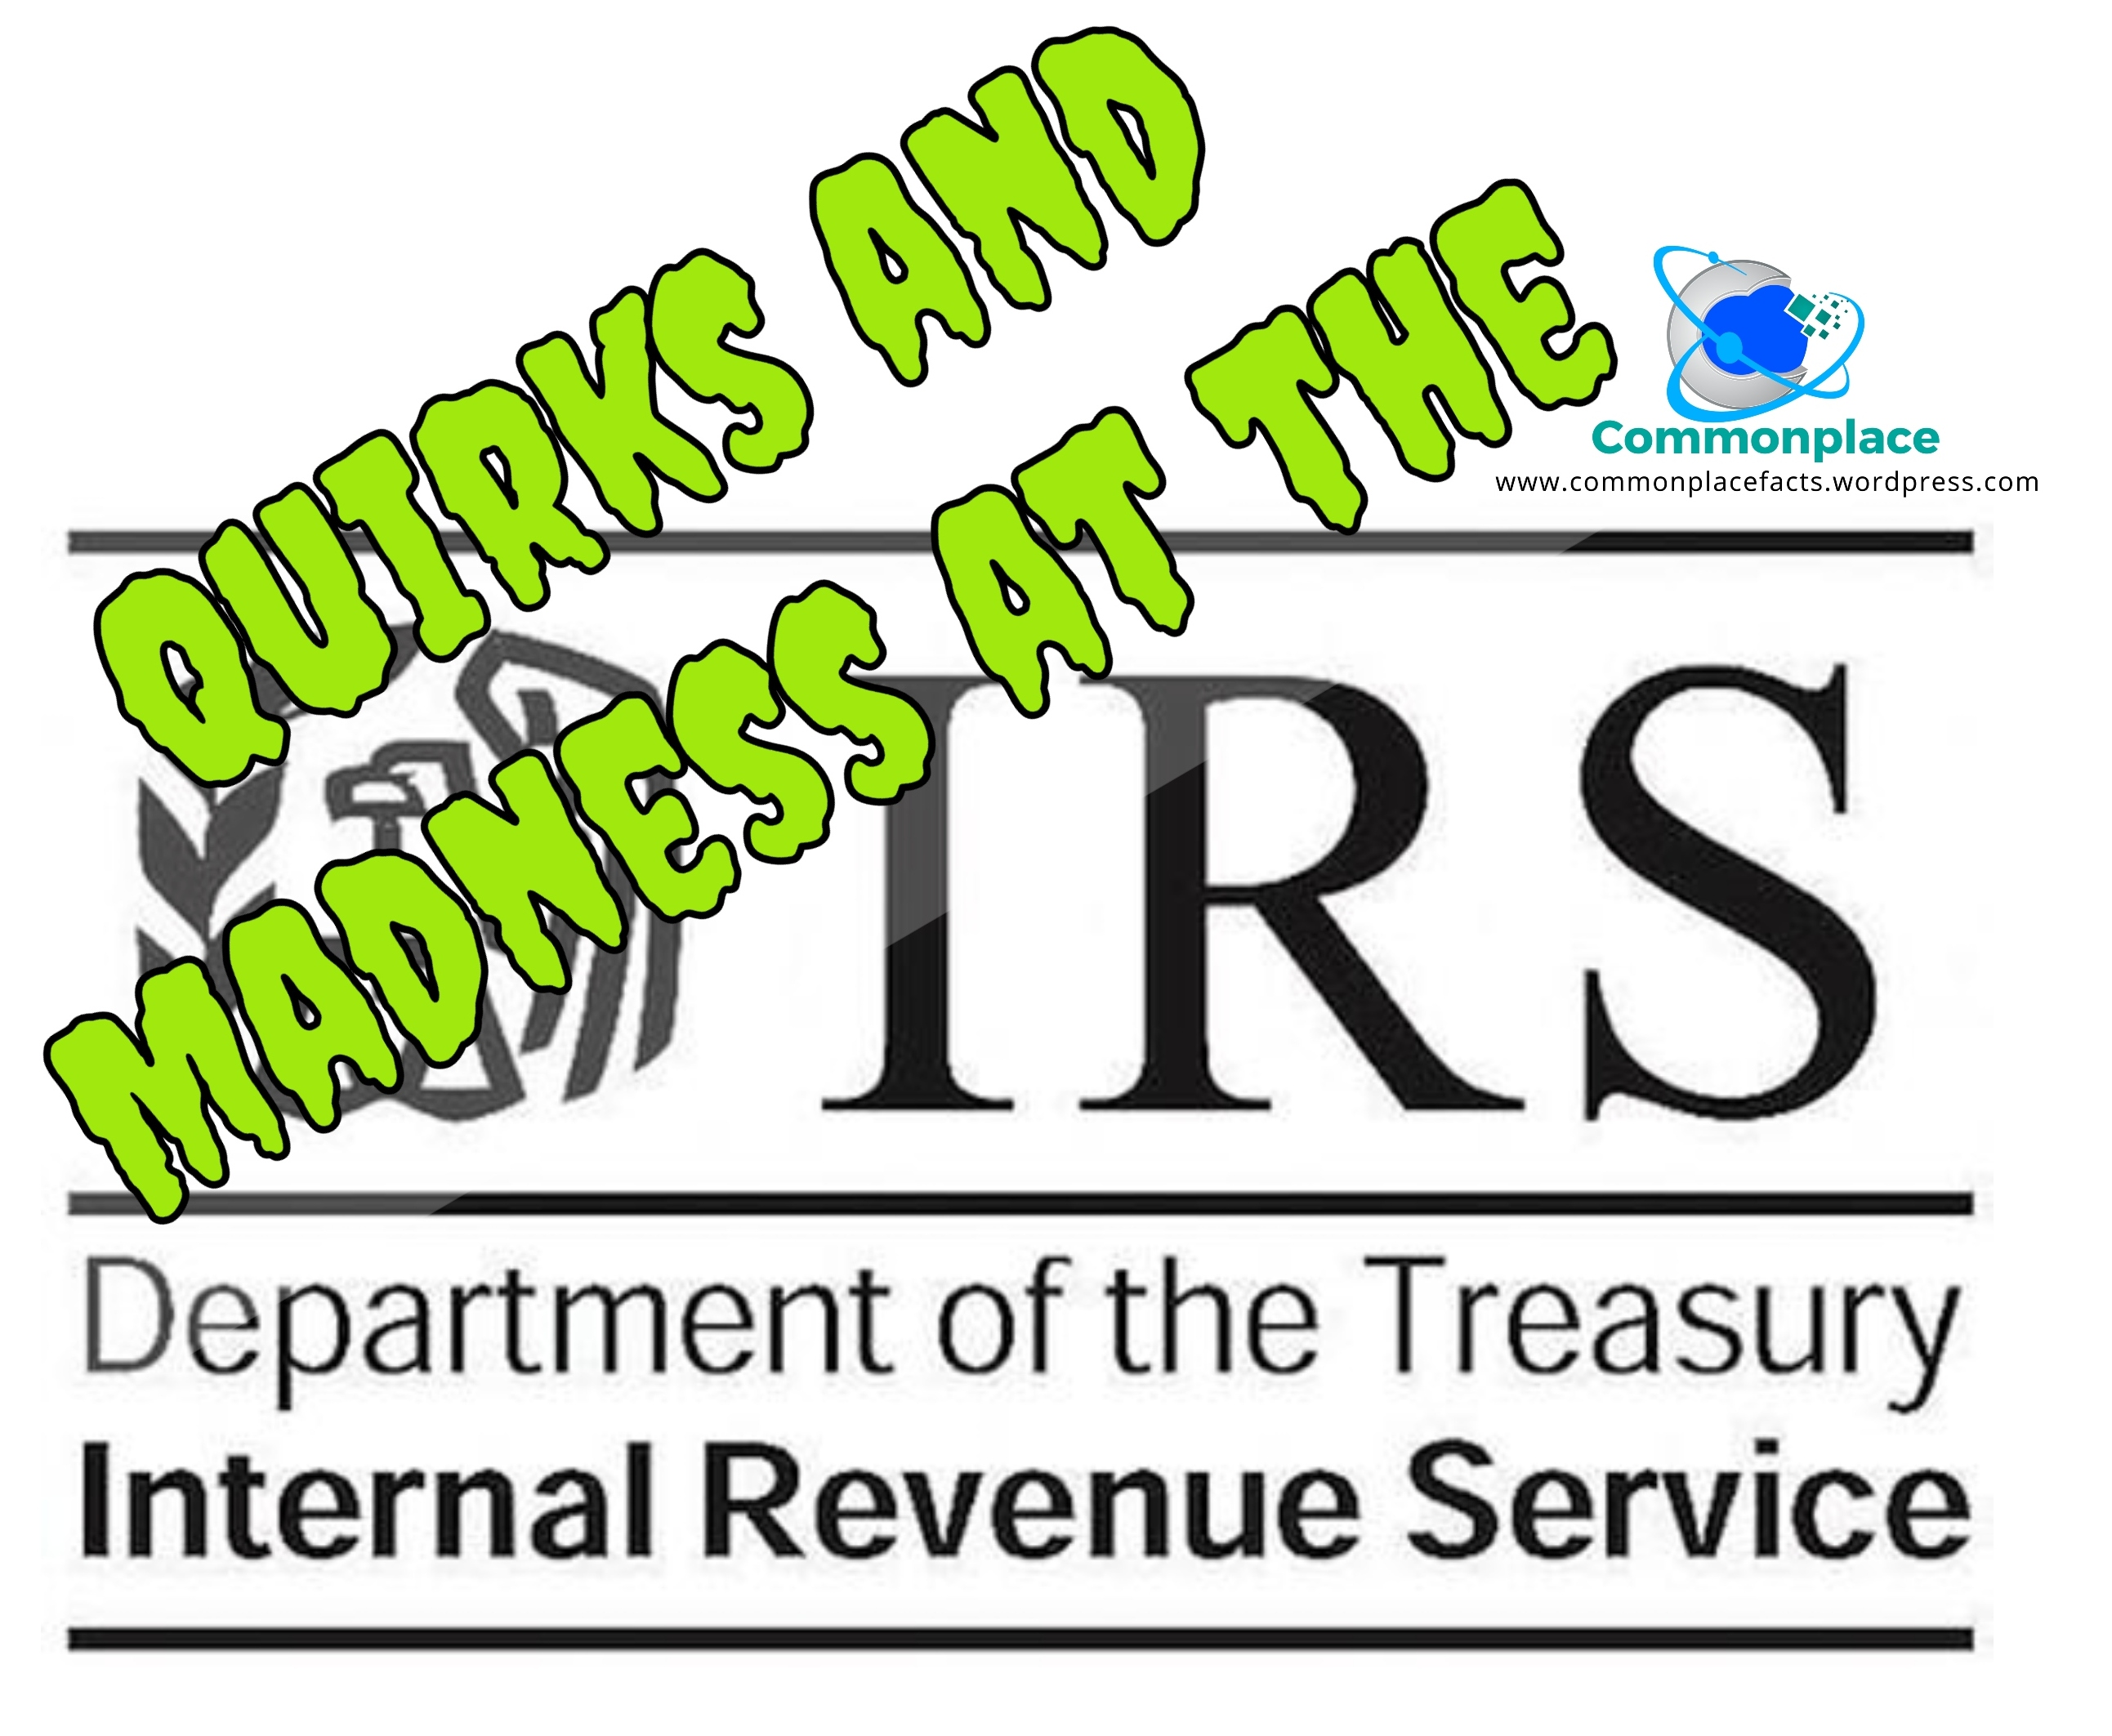 quirks and madness at IRS